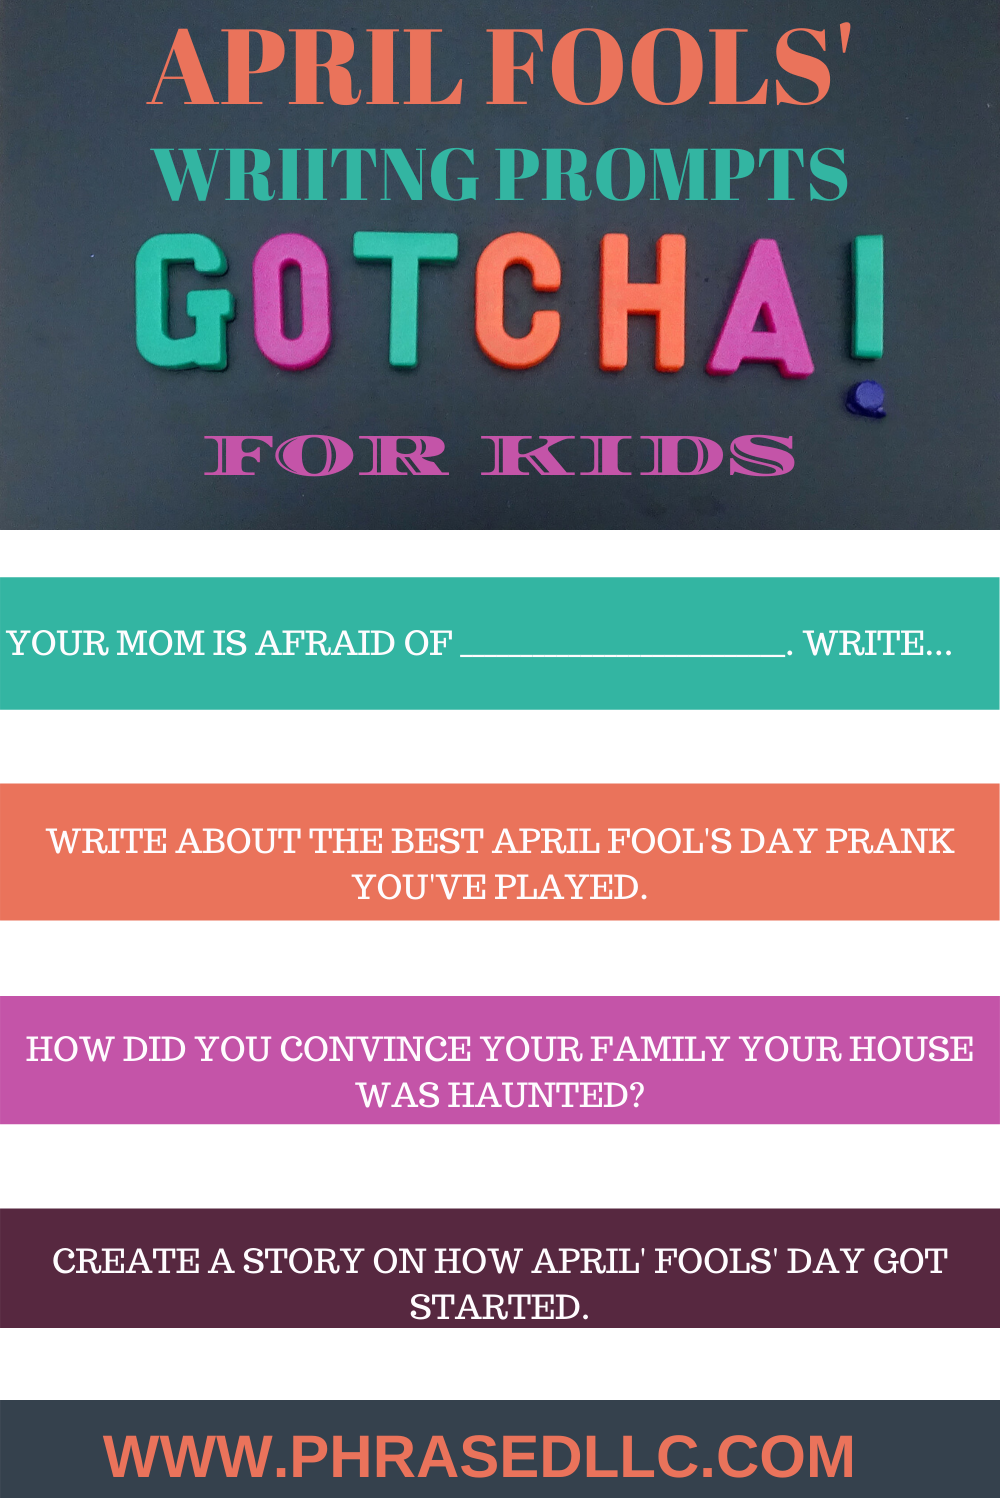 April Fools' Day writing prompts for kids to enjoy writing and celebrate April Fools' day.